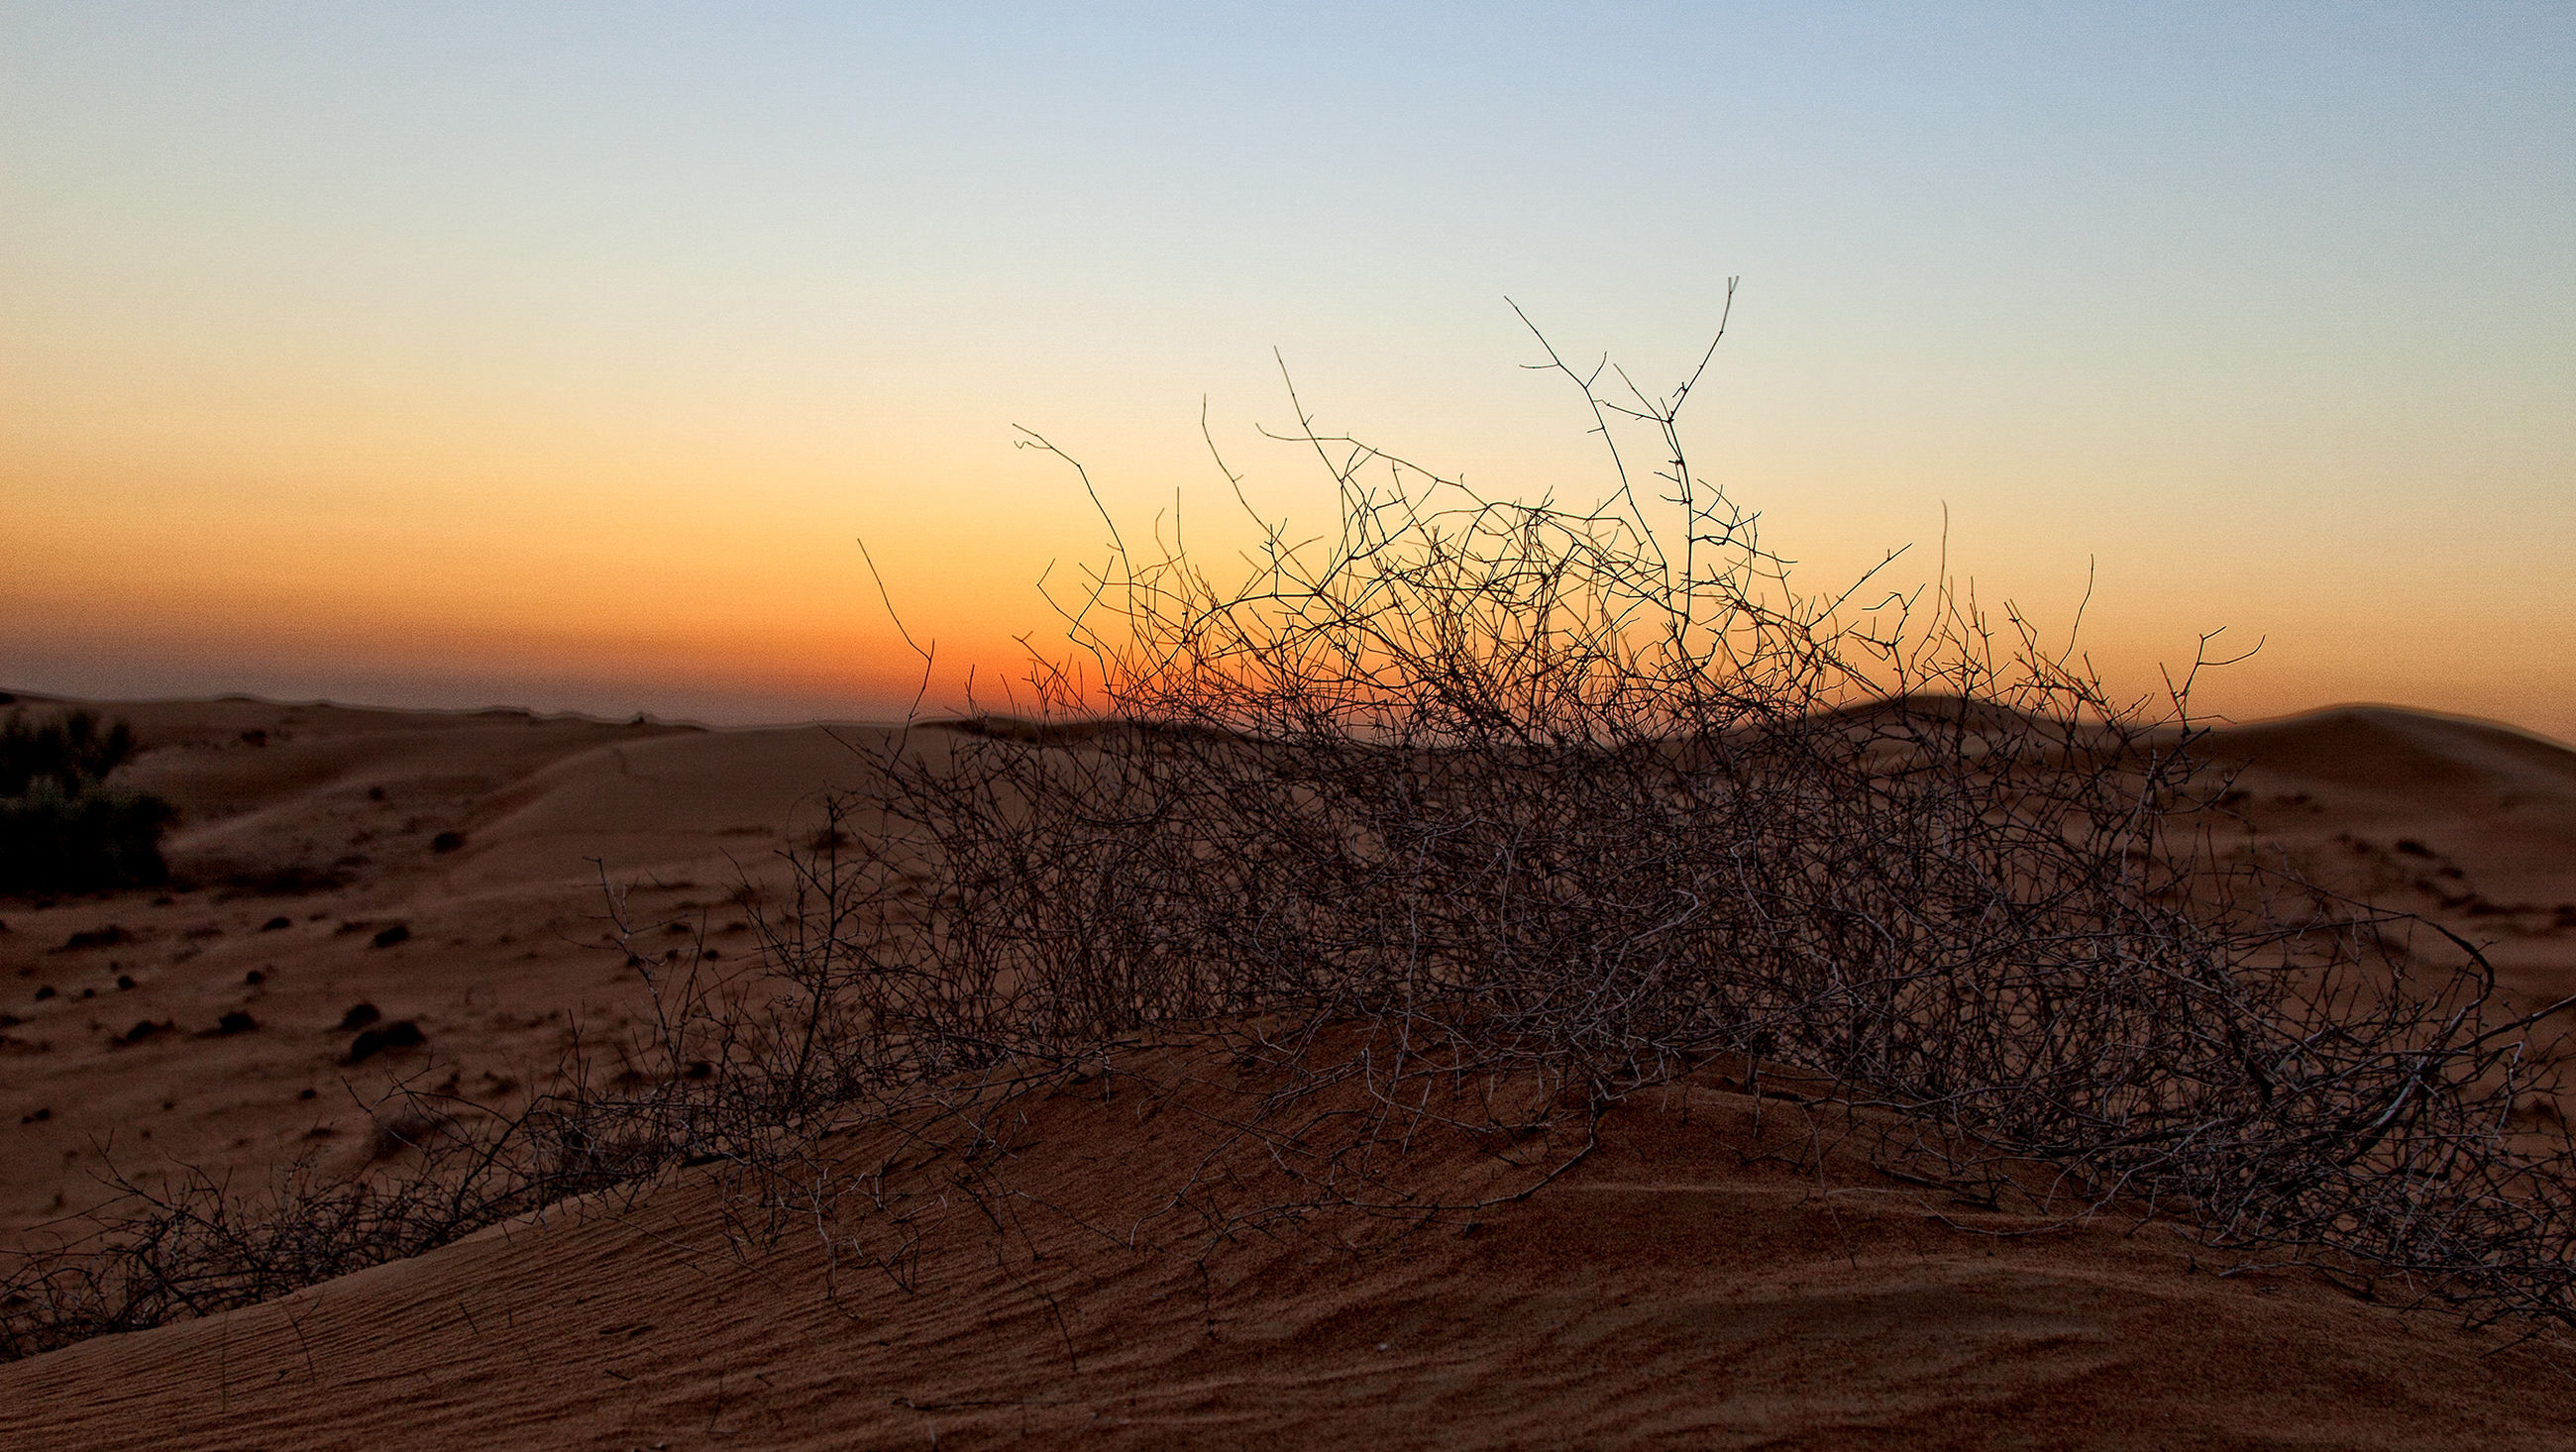 sunset, tranquil scene, desert, tranquility, landscape, arid climate, clear sky, scenics, nature, sand dune, sand, beauty in nature, barren, horizon over land, copy space, remote, non-urban scene, sky, idyllic, dry